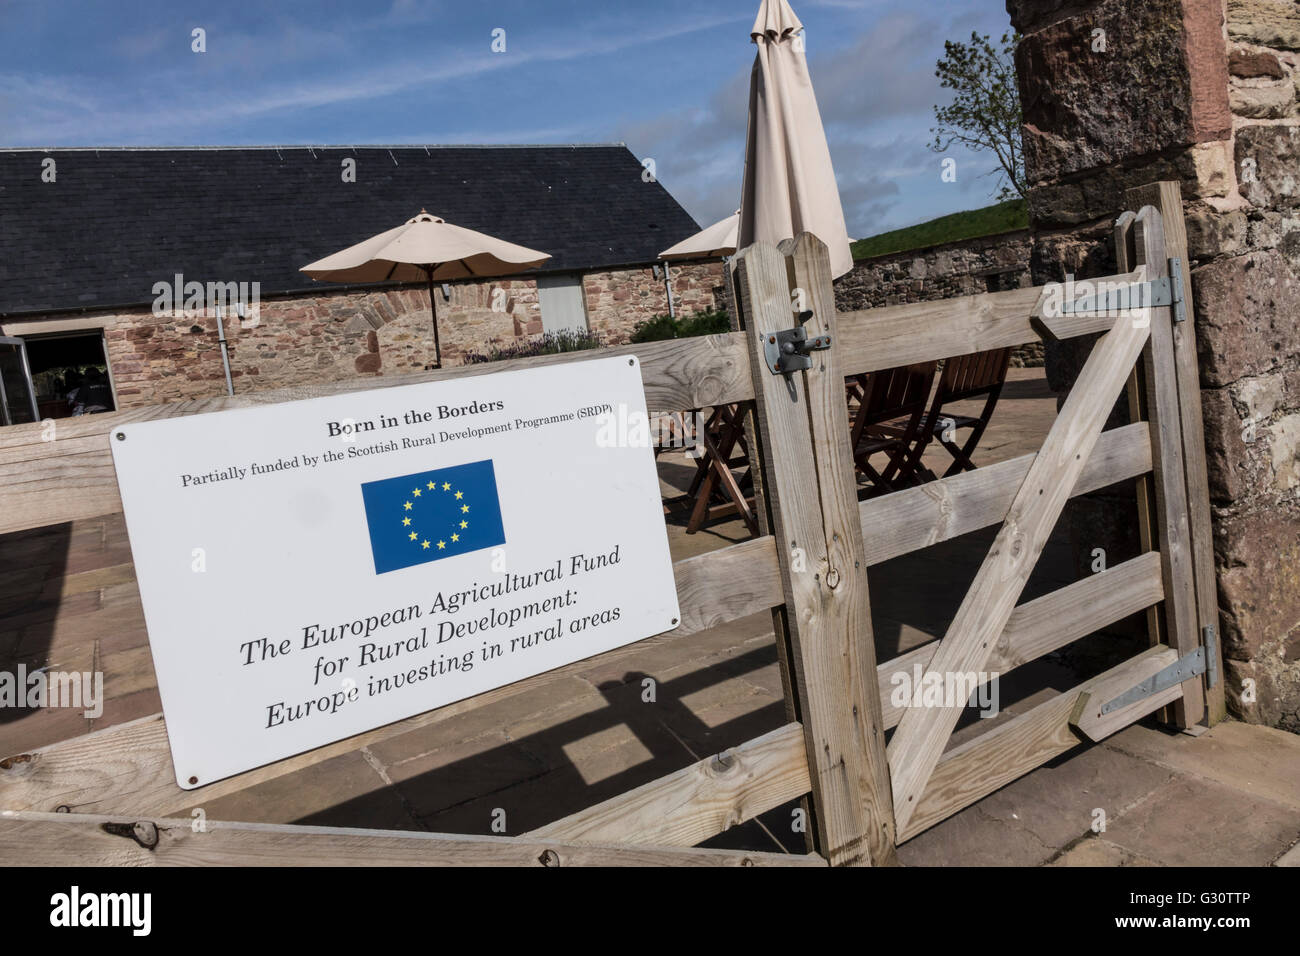 EU assistance shown on Born in the Borders, brewery and shops/café development in Scotland - Stock Image